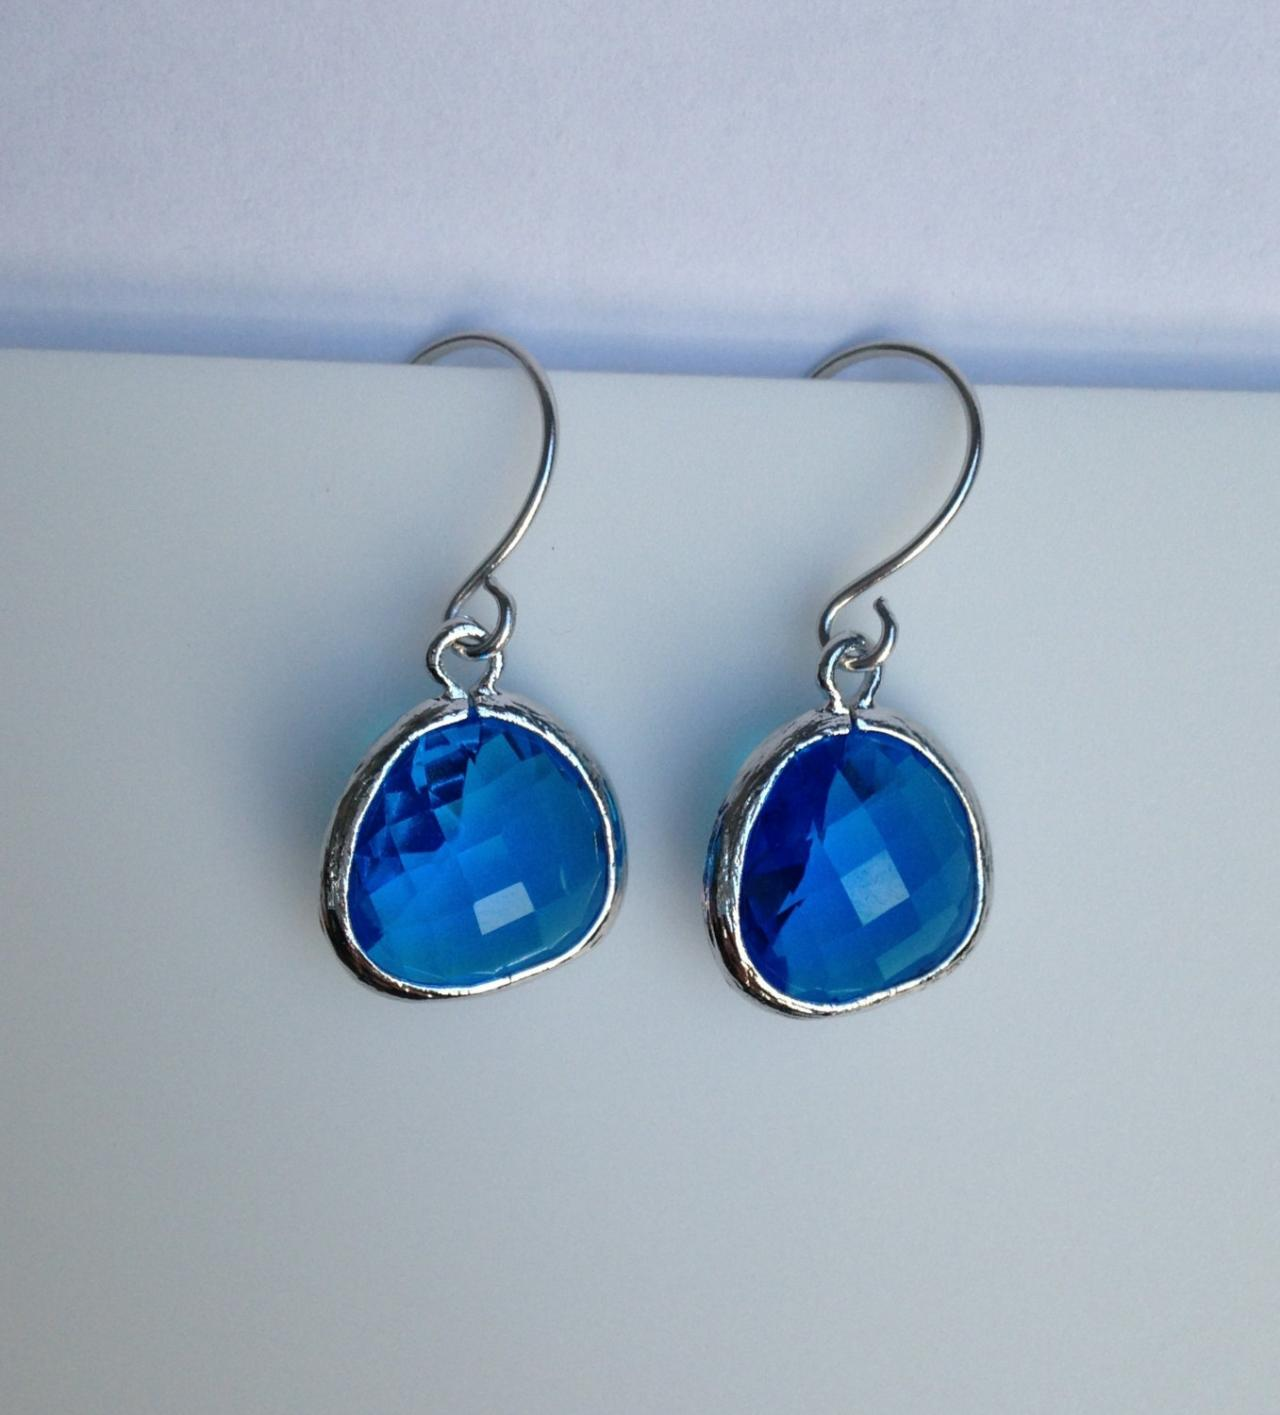 Sapphire Teardrop Earrings (Silver), Drop, Dangle, Glass Earrings, Bridesmaid Gifts,Wedding Jewelry, JEW000126